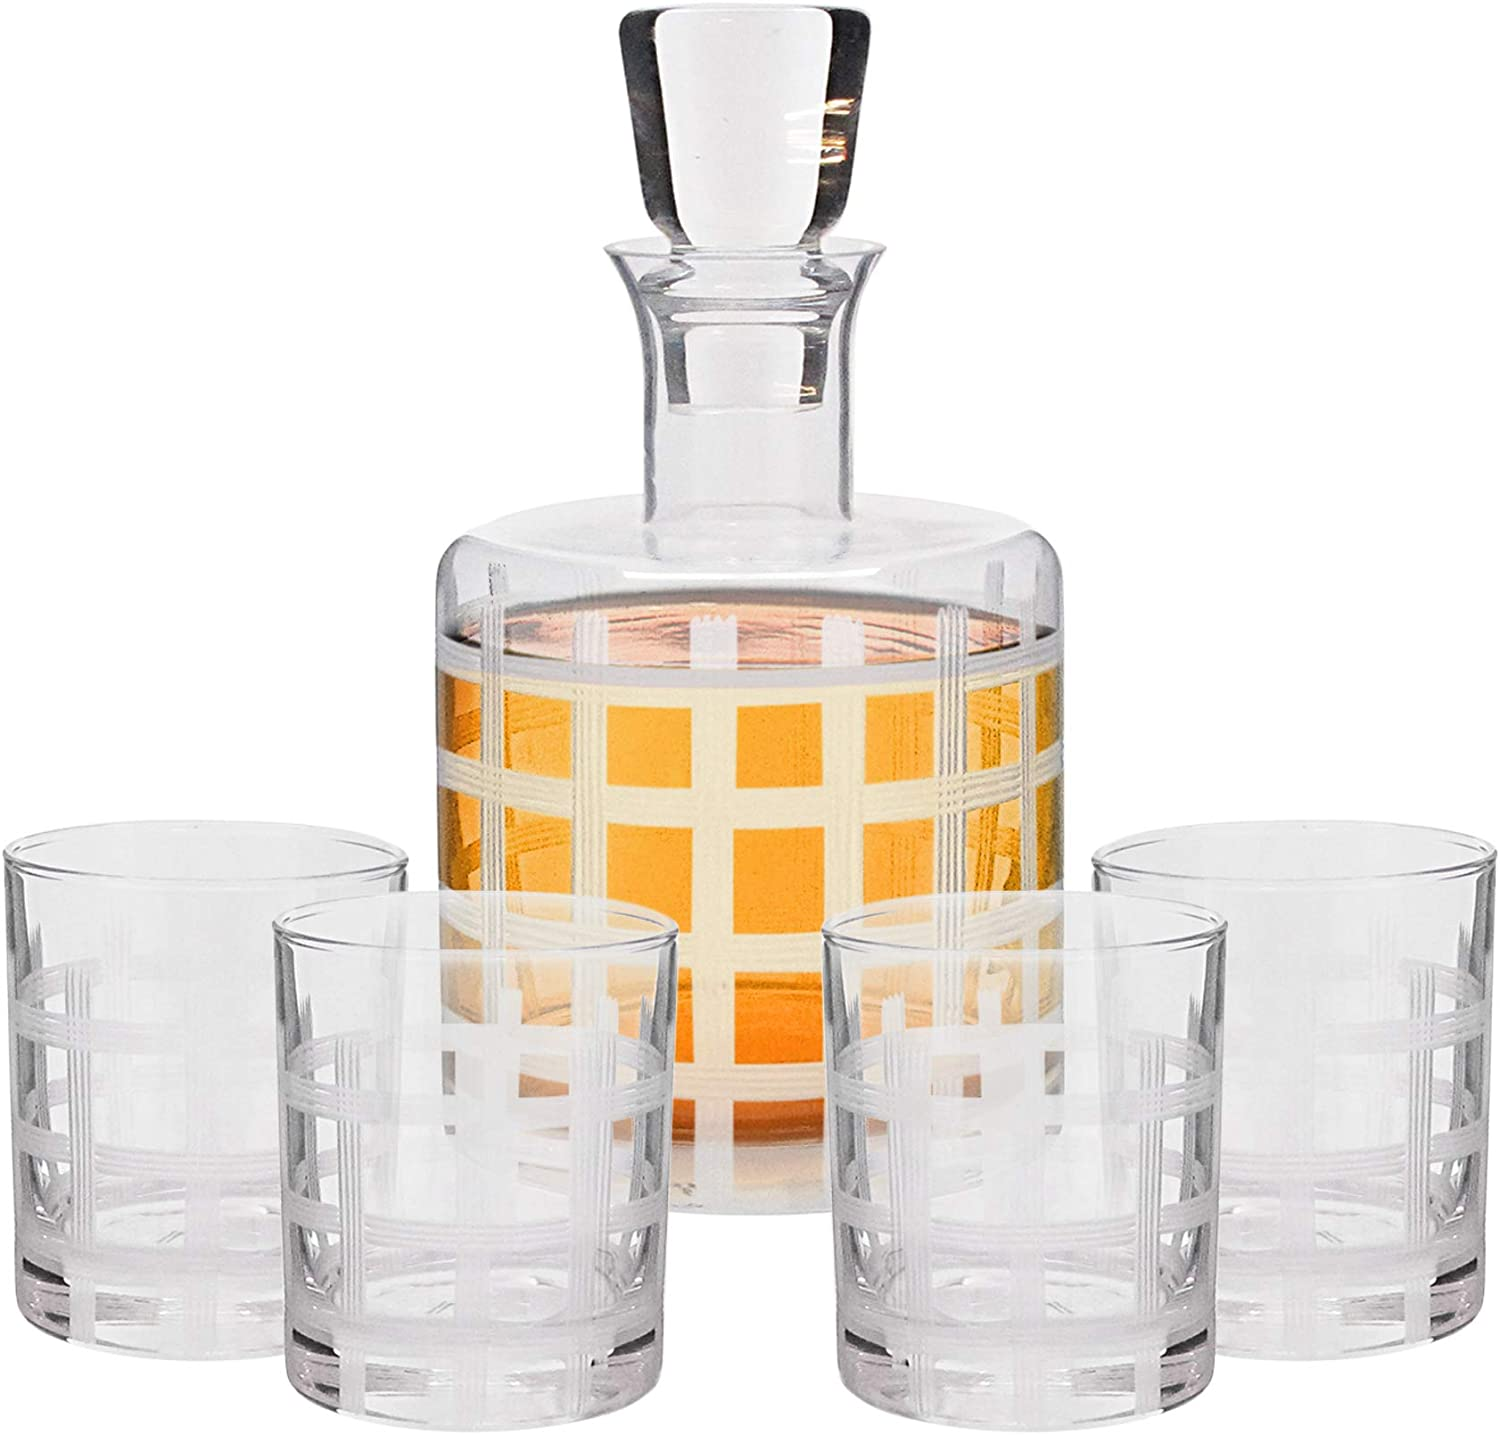 Style Setter 37 oz Decanter Set – Lead-Free Matching Decanter & Glassware for Everyday or Entertaining – Modern Glasses-Gift for Weddings, Birthdays & Holidays